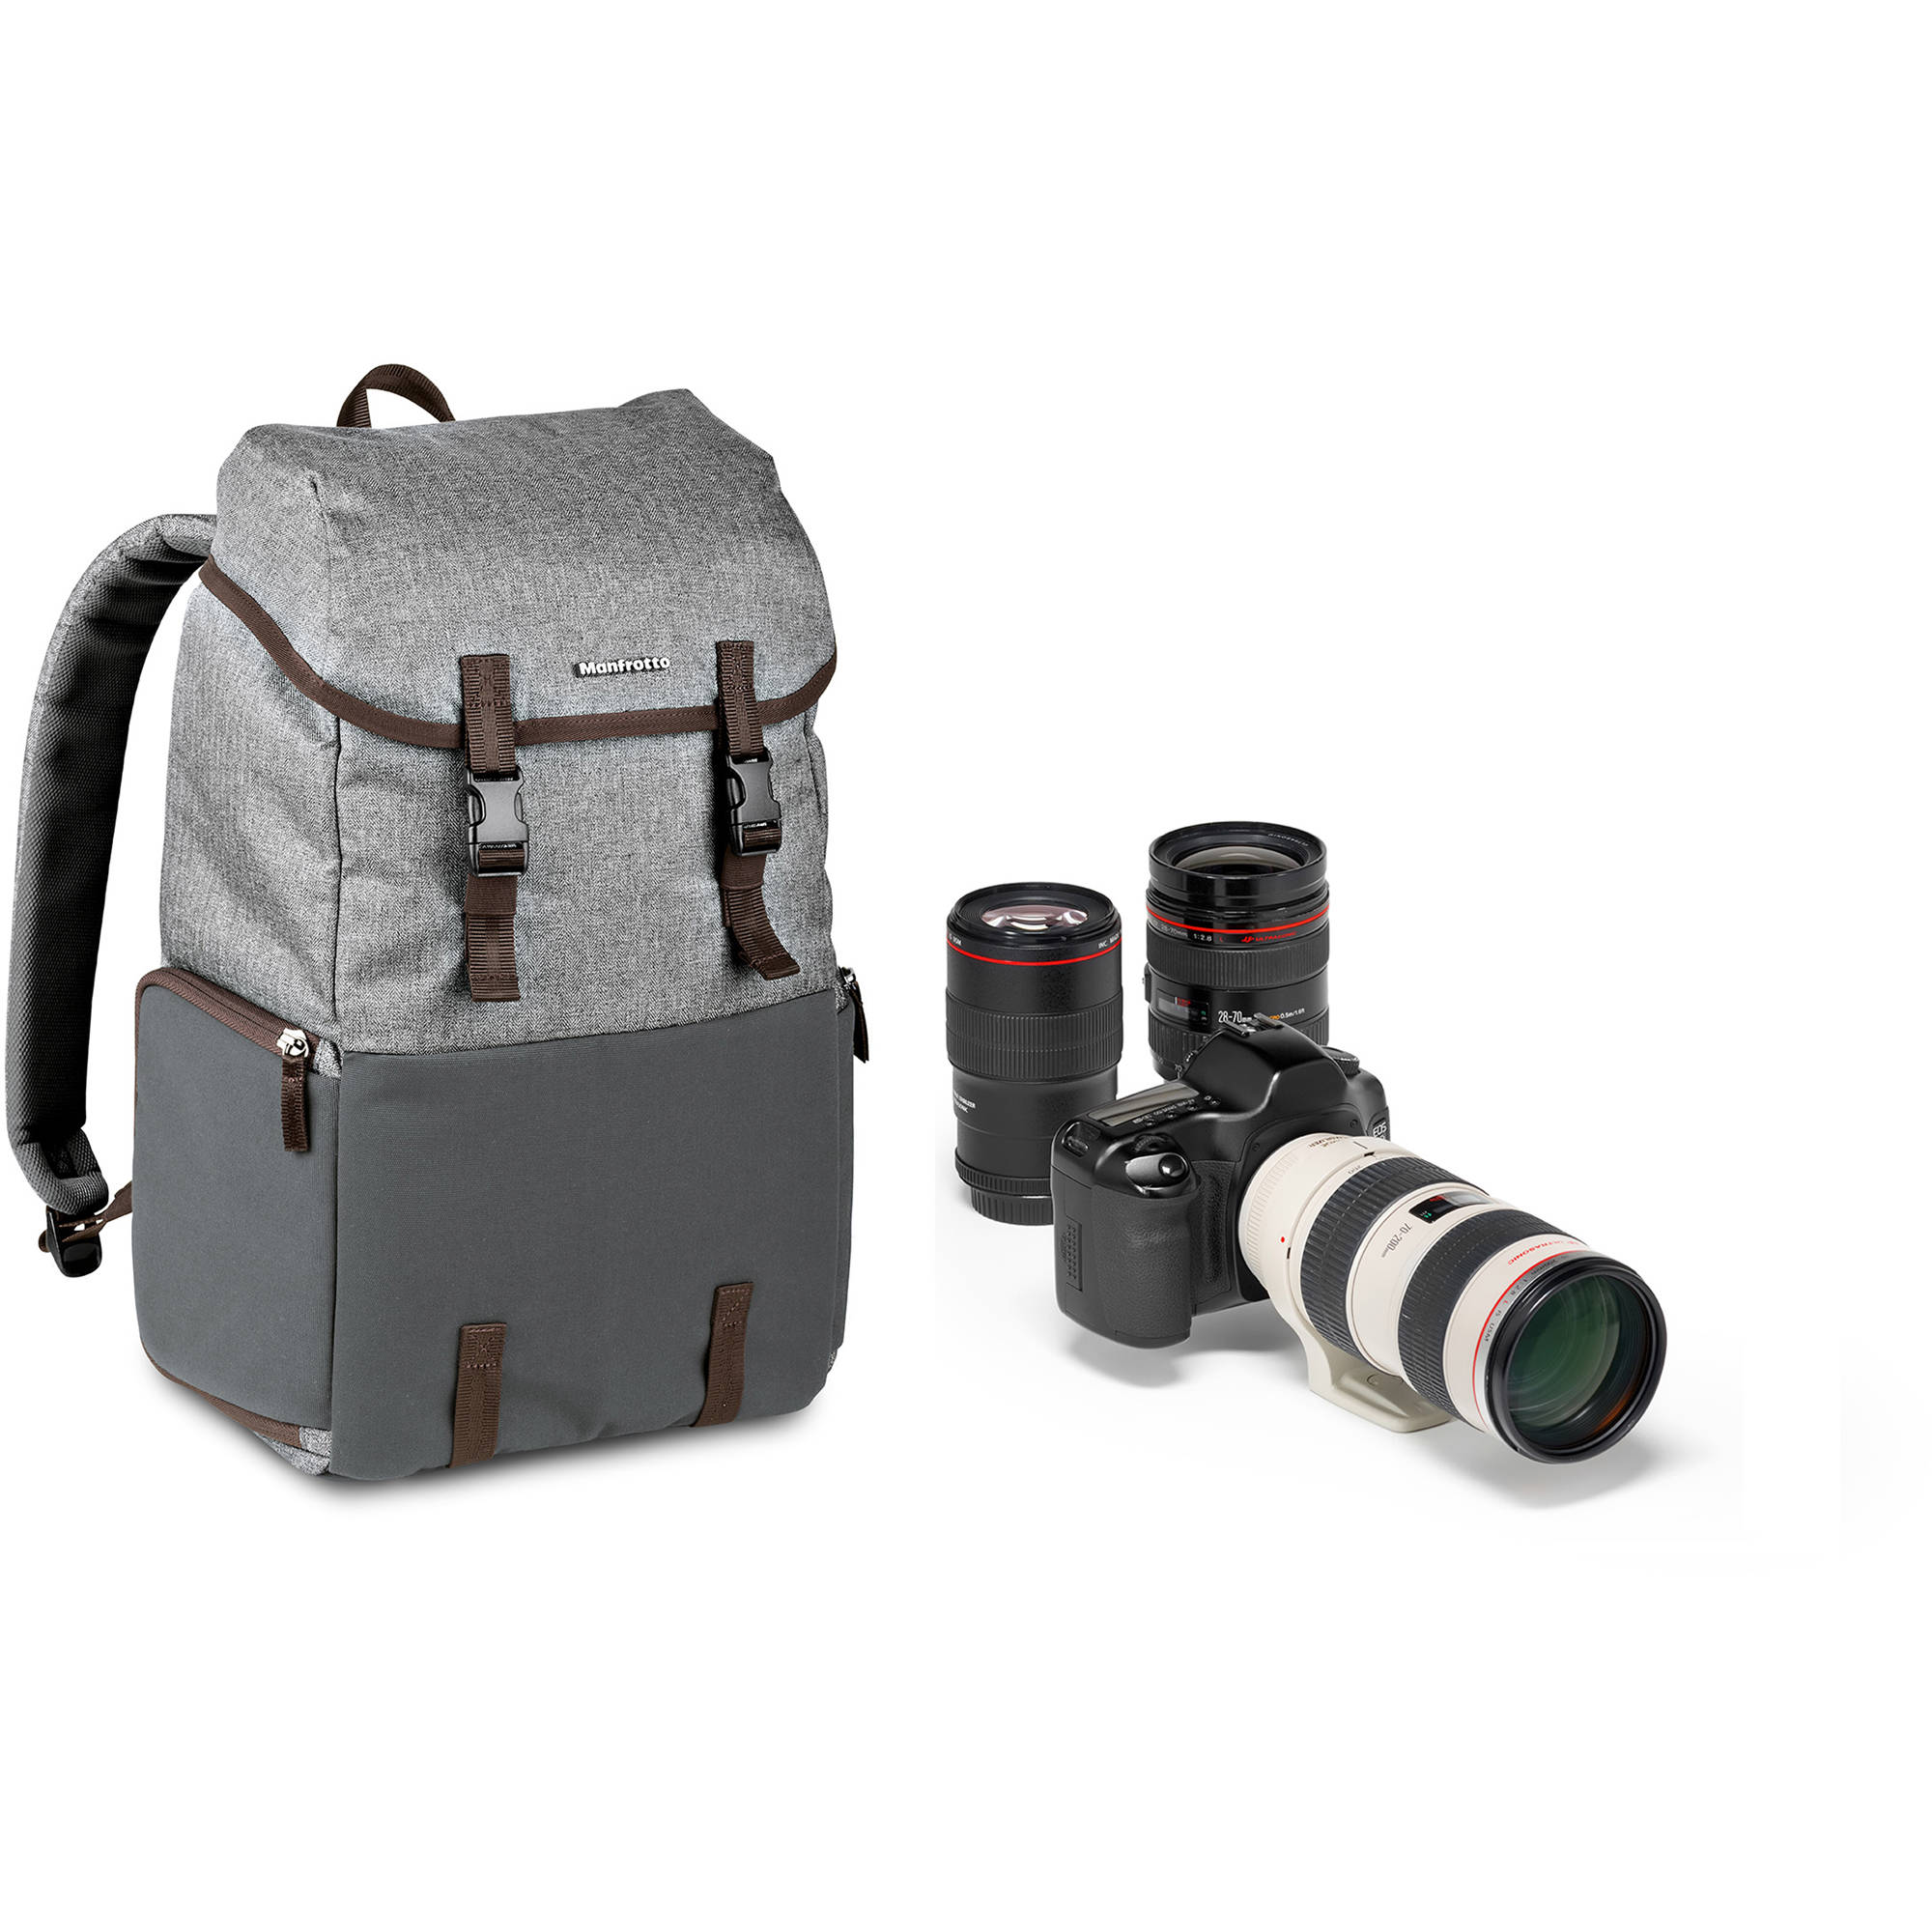 Manfrotto Windsor Explorer Camera Backpack Improved with Clips